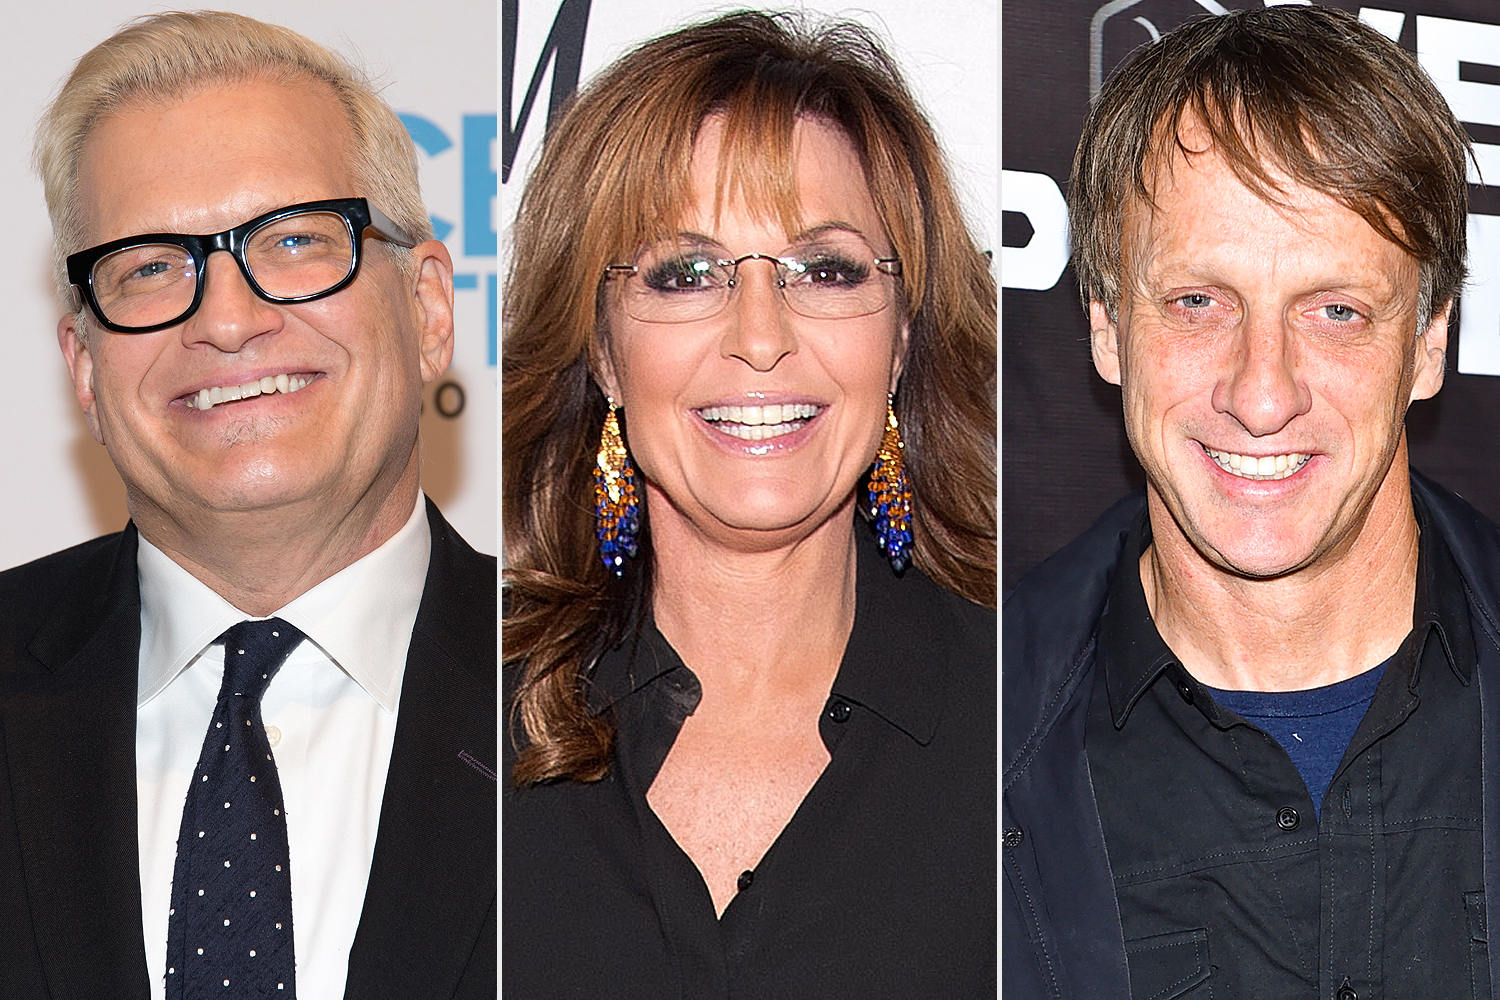 Drew Carey, Sarah Palin, Tony Hawk